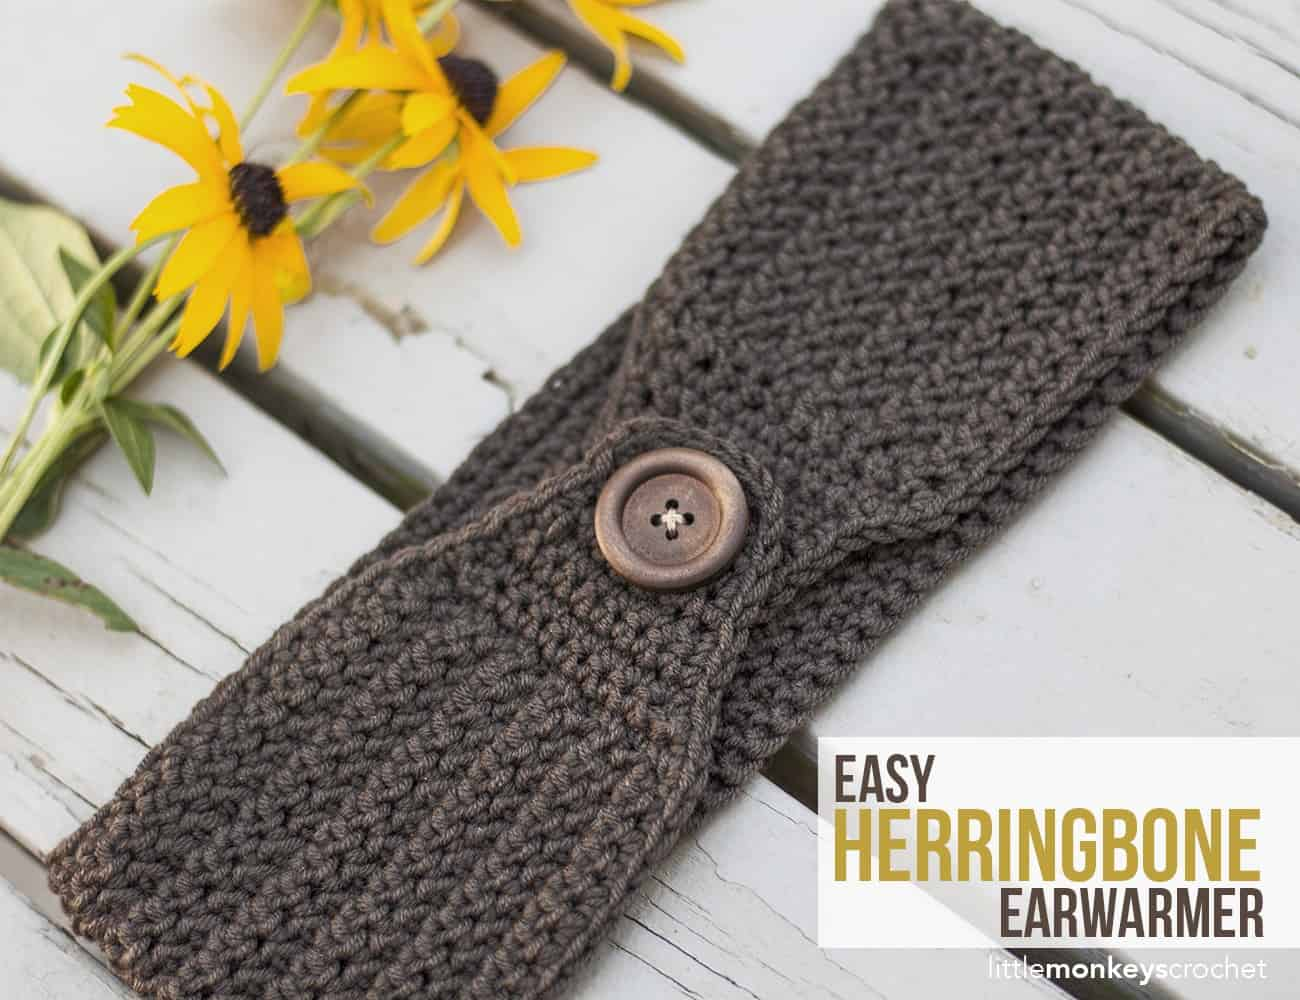 Herringbone ear warmer with a button